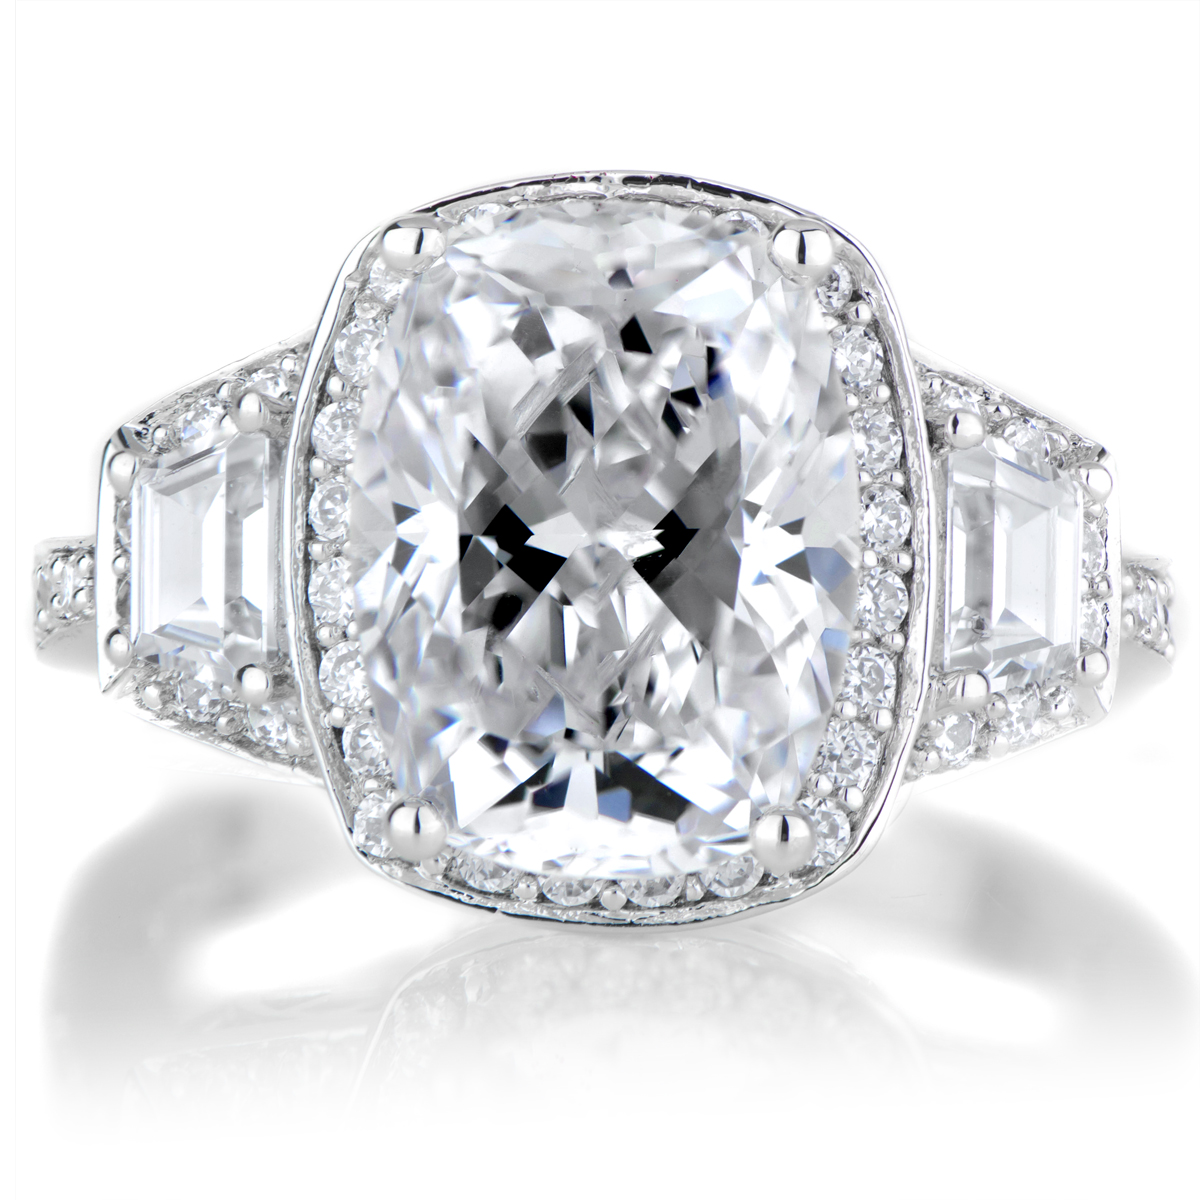 Kala s Cushion Cut Silvertone Engagement Ring